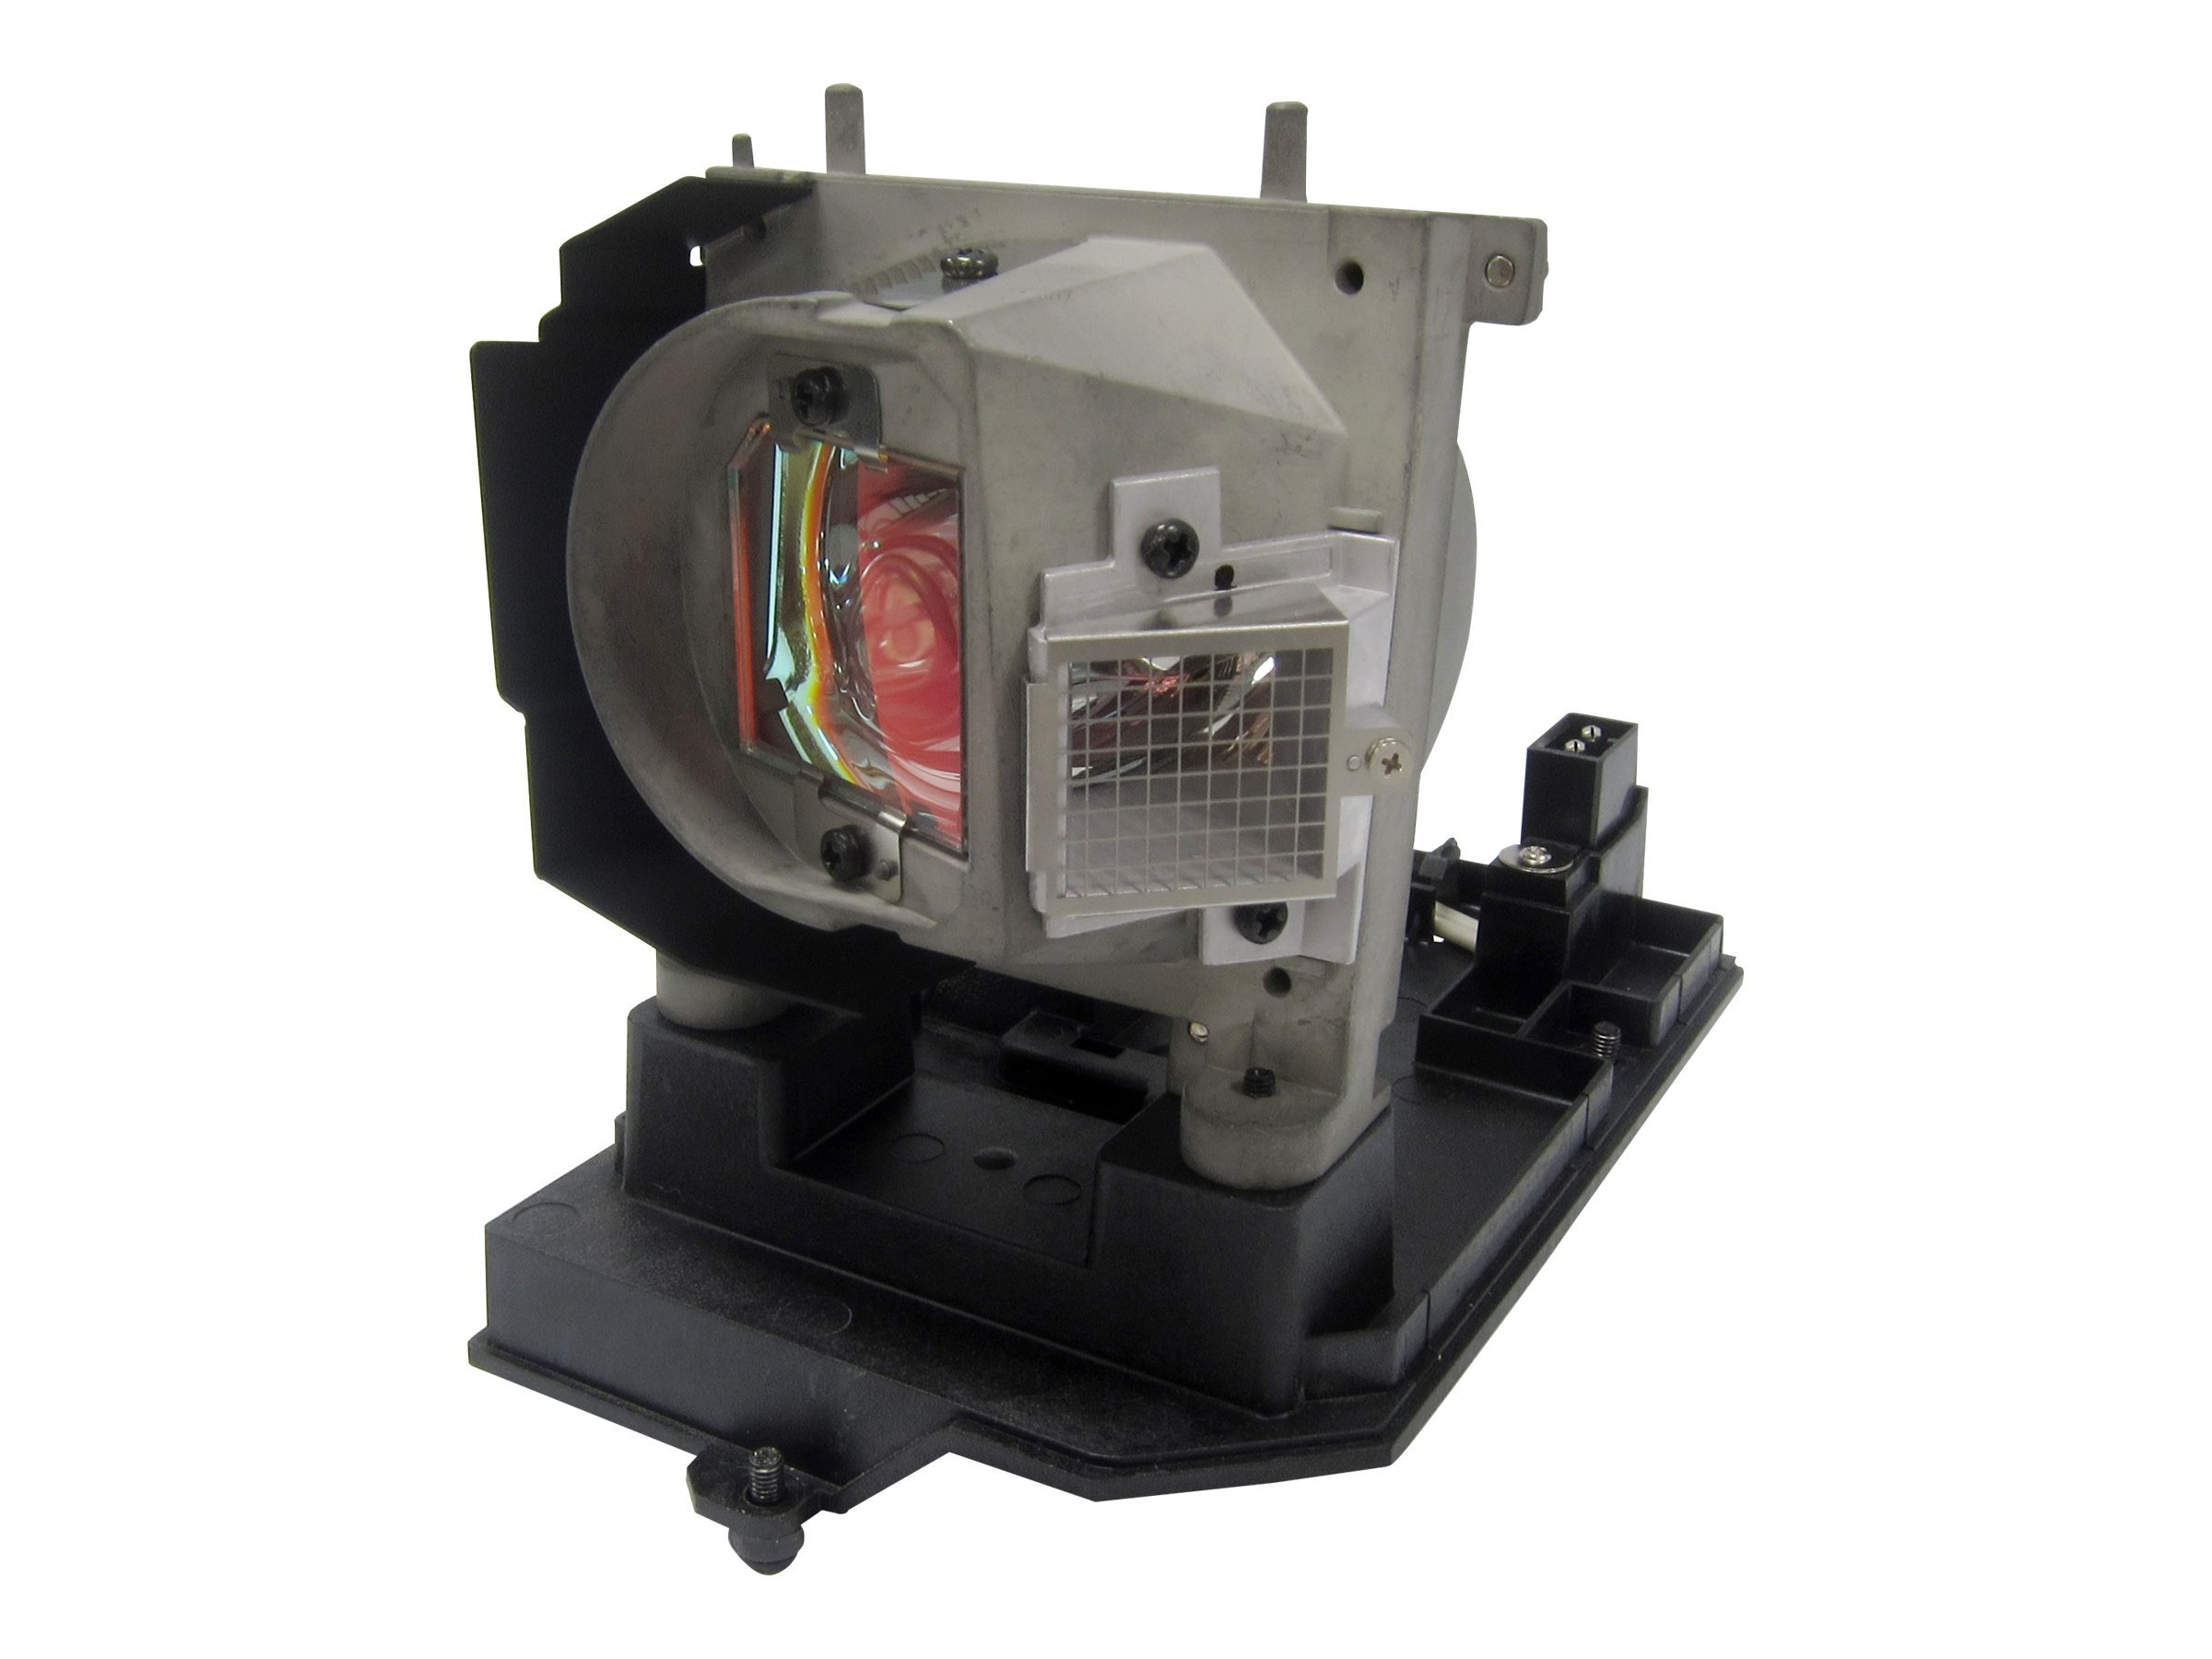 Optoma Replacement Lamp for TW610ST, TX610ST Projectors